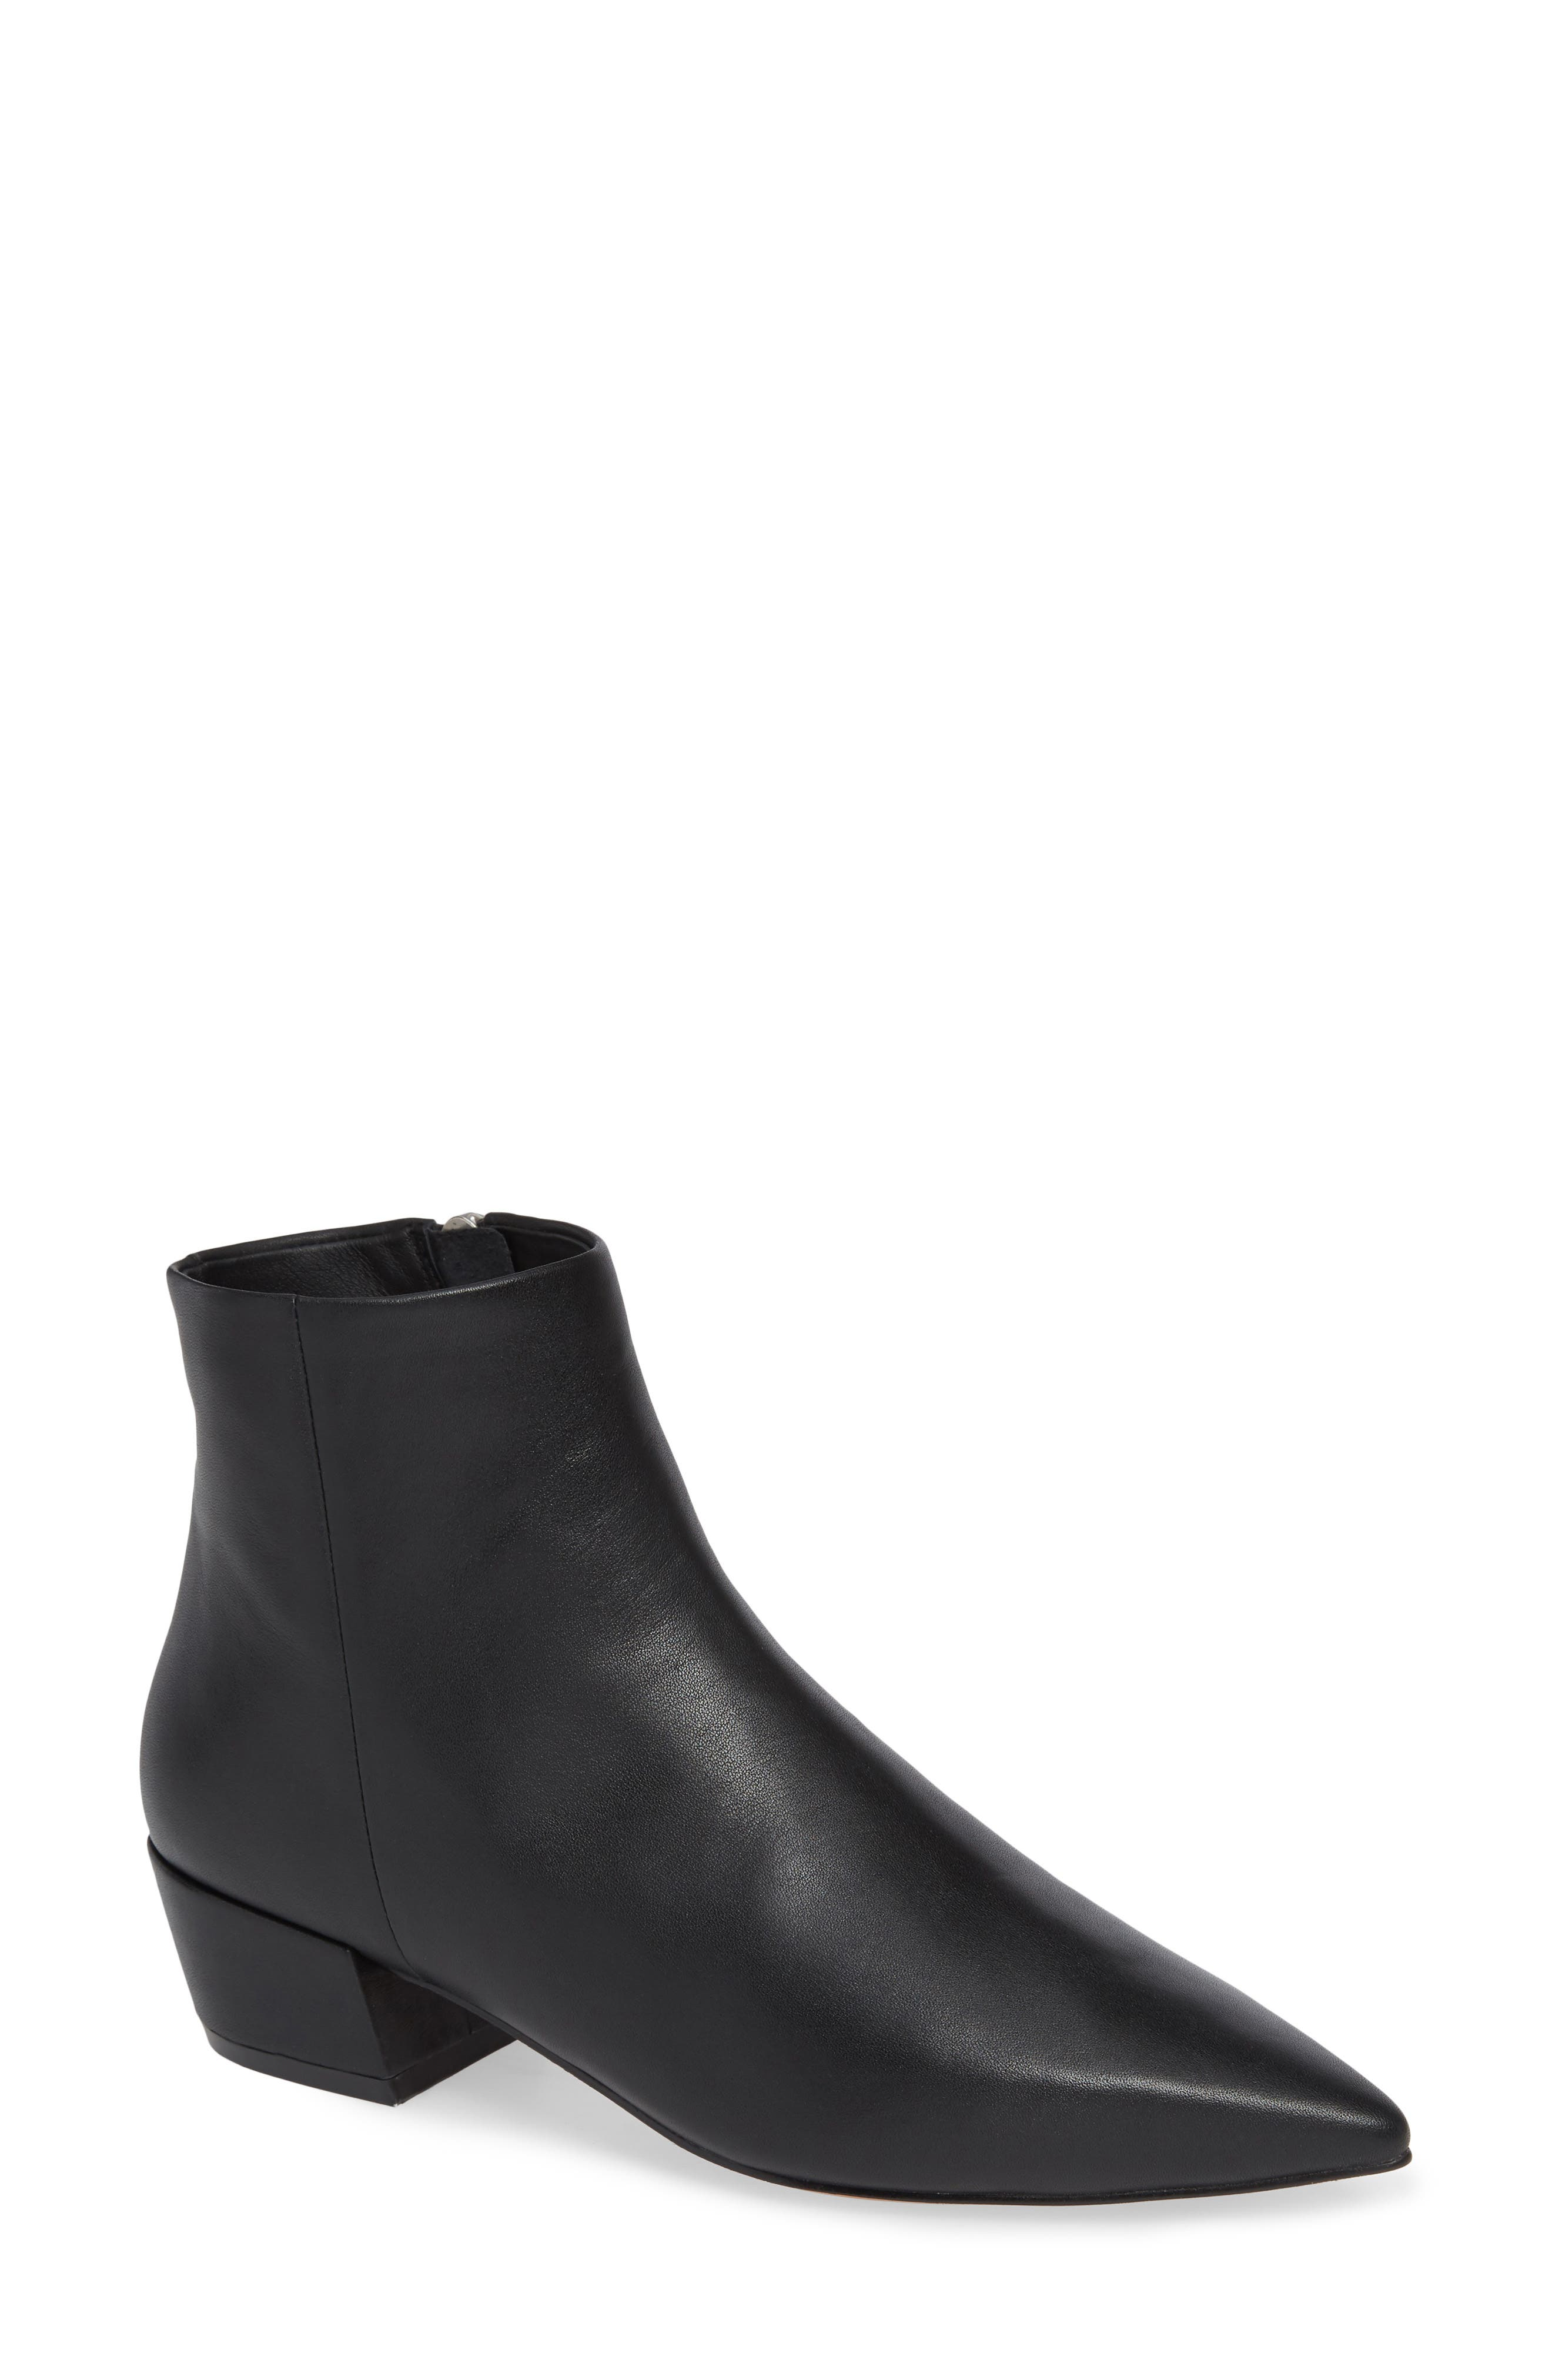 LINEA PAOLO, Robyn Waterproof Boot, Main thumbnail 1, color, BLACK LEATHER